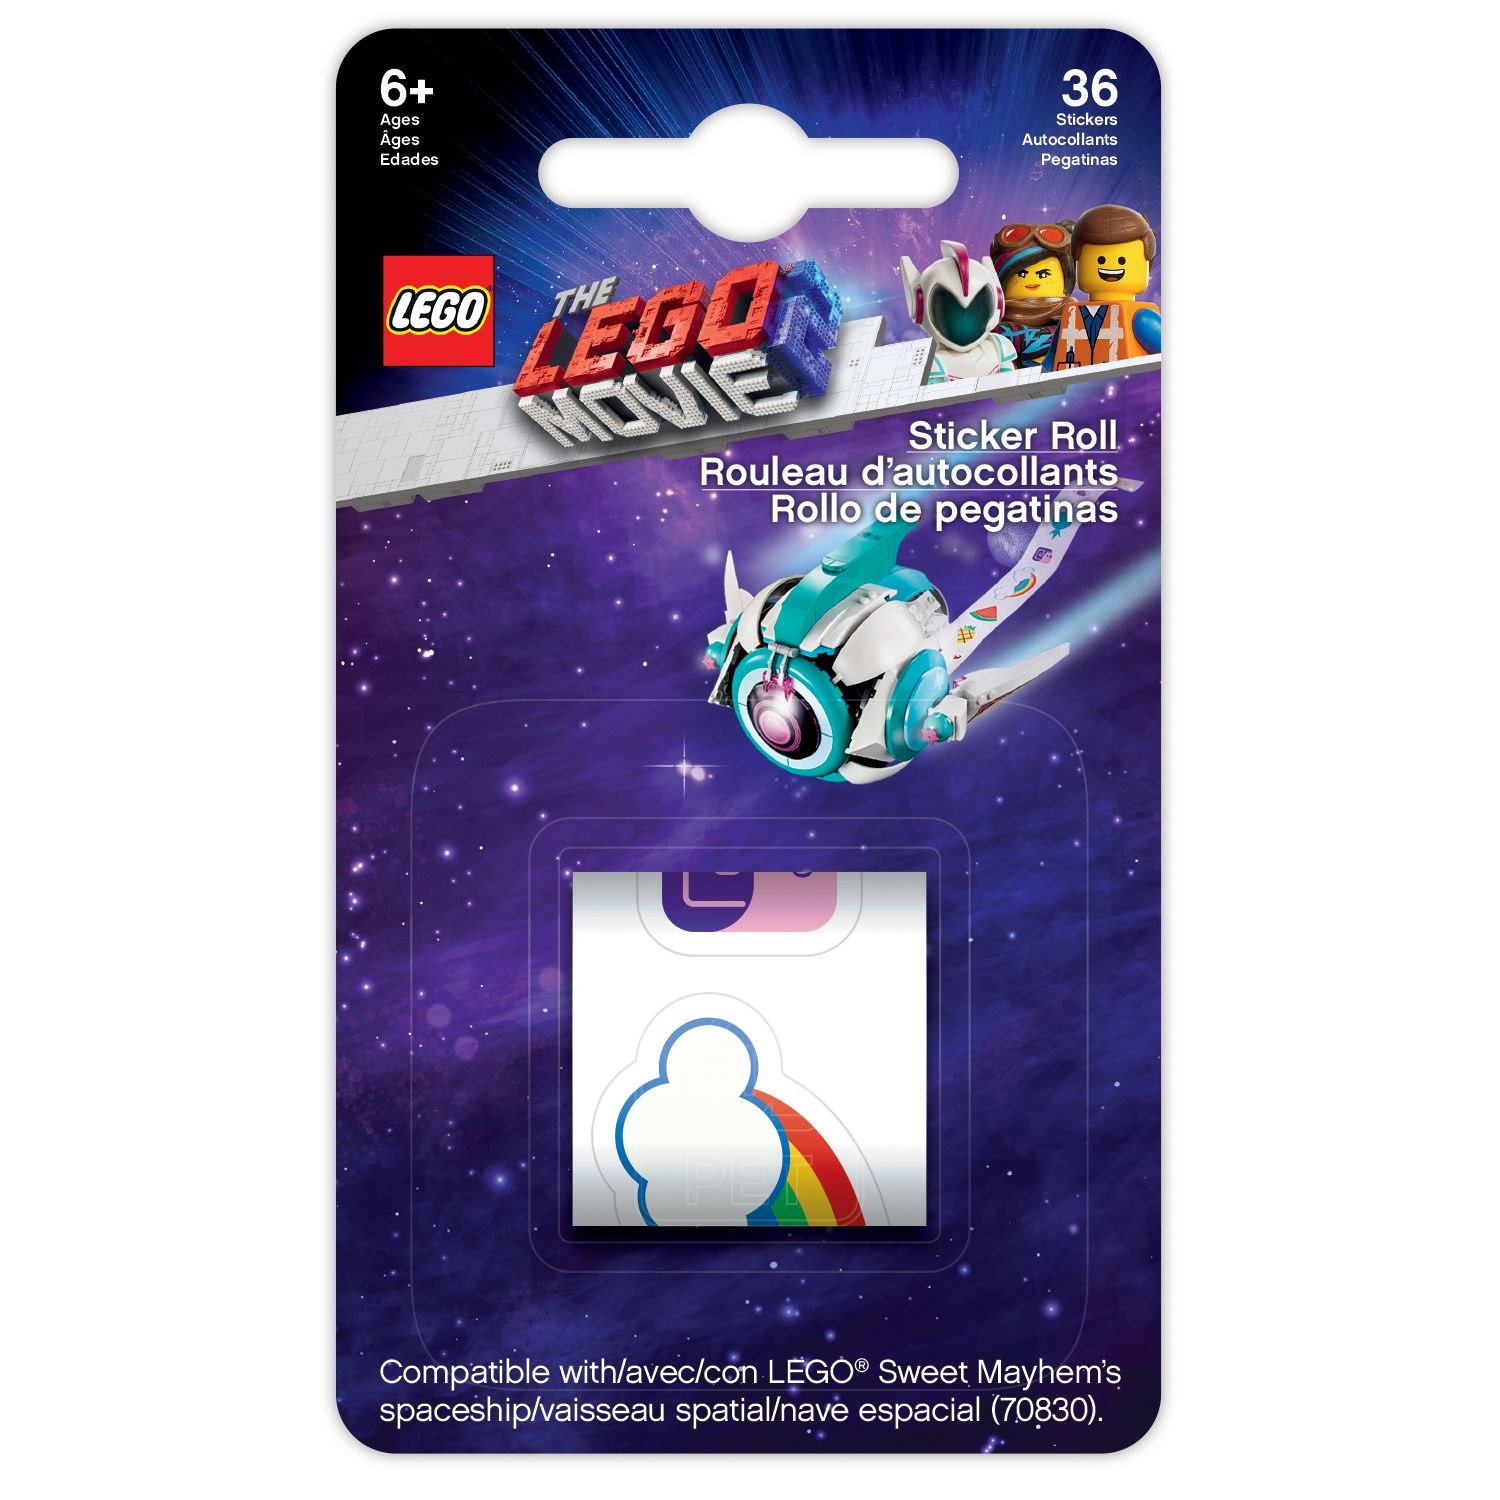 LEGO The Lego Movie 2 5005738 THE LEGO® MOVIE 2™ Stickerband LEGO_5005738_alt1.jpg